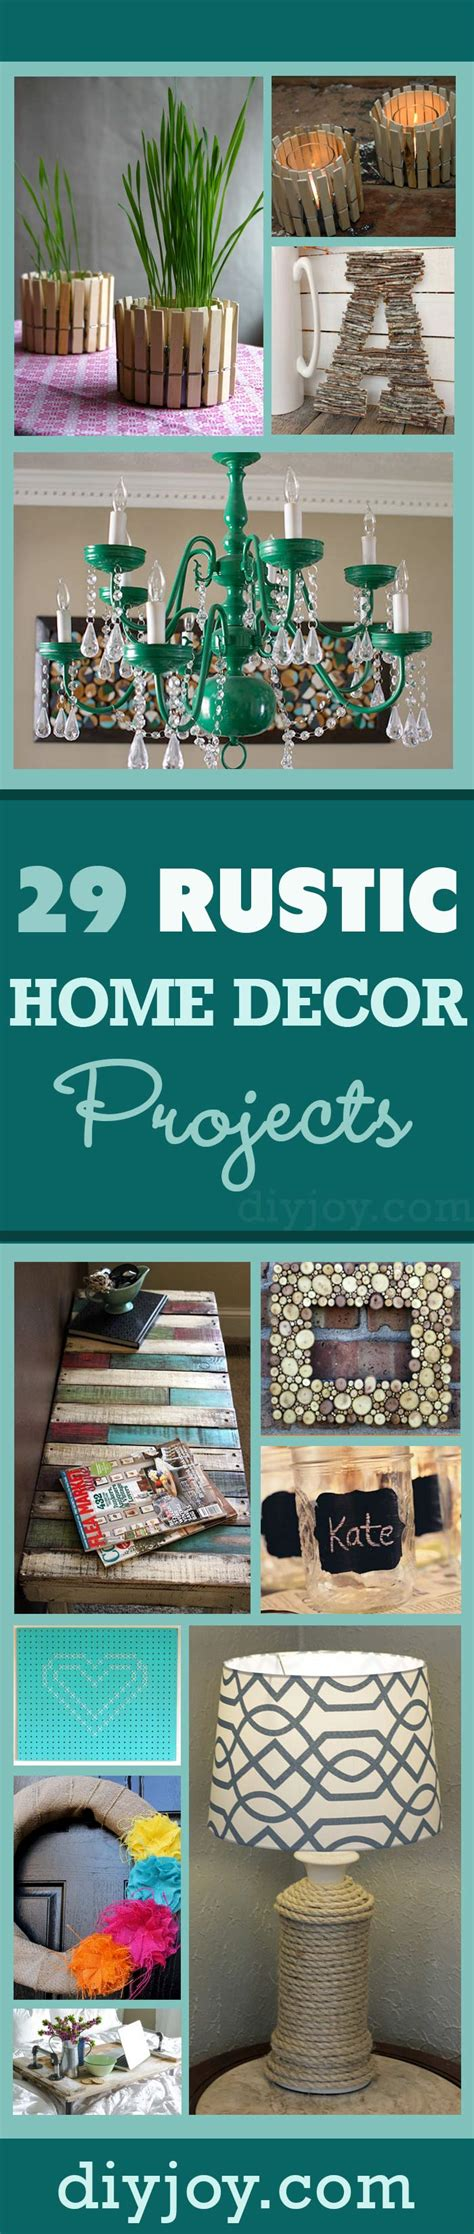 diy crafts for home decor 29 rustic diy home decor ideas page 3 of 6 diy